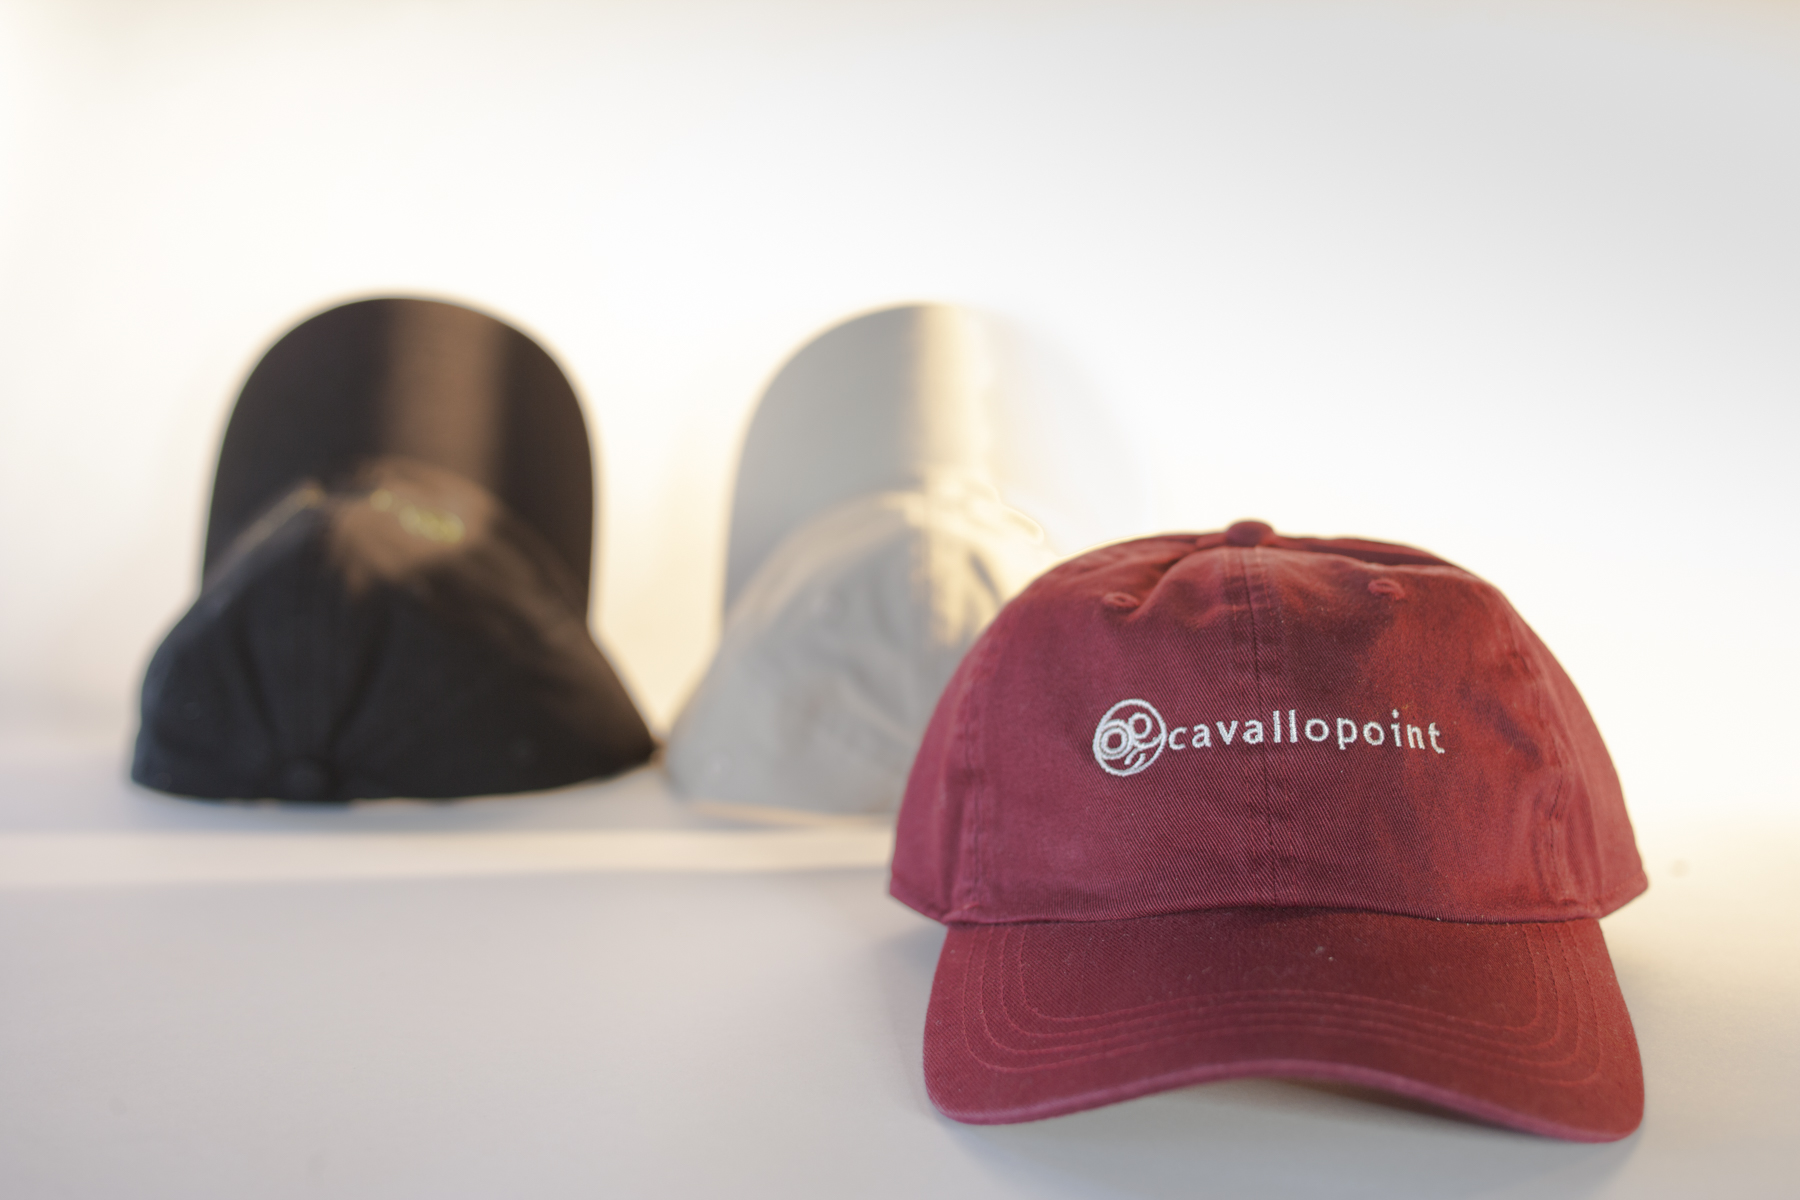 You may also like: - Cavallo Point Baseball Cap